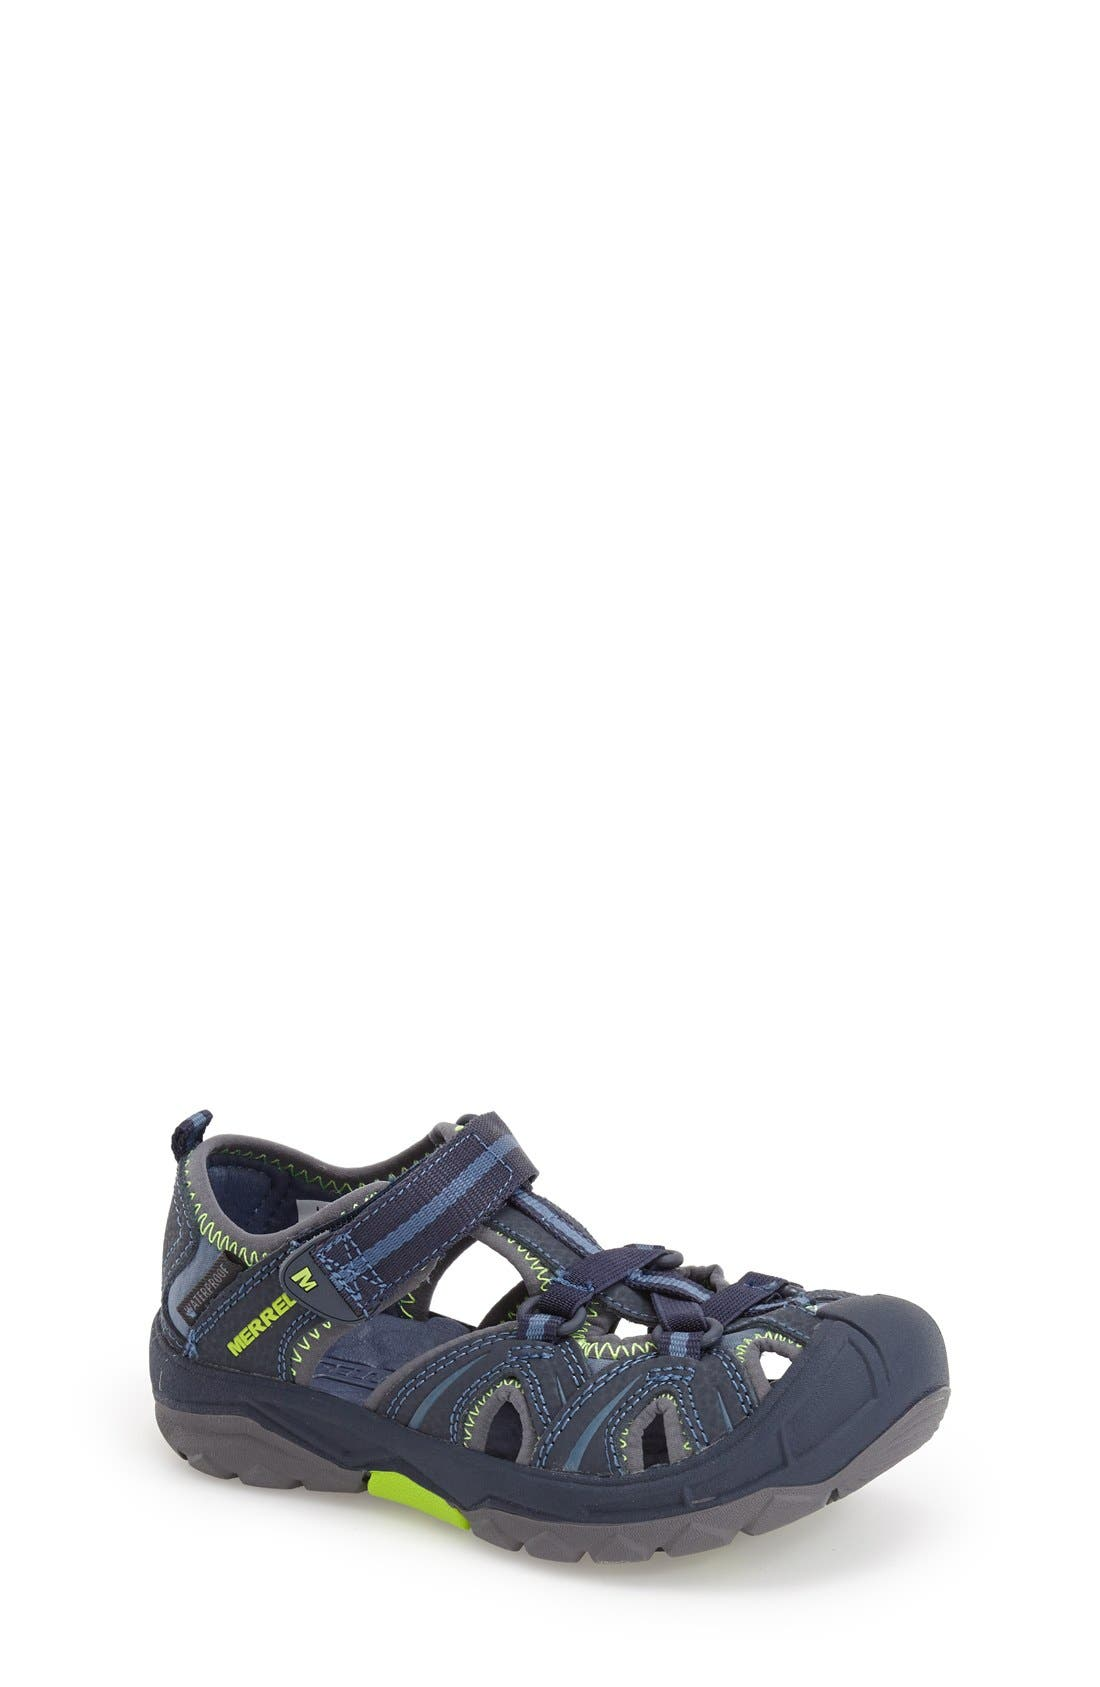 MERRELL, Hydro Water Sandal, Main thumbnail 1, color, NAVY/ GREEN